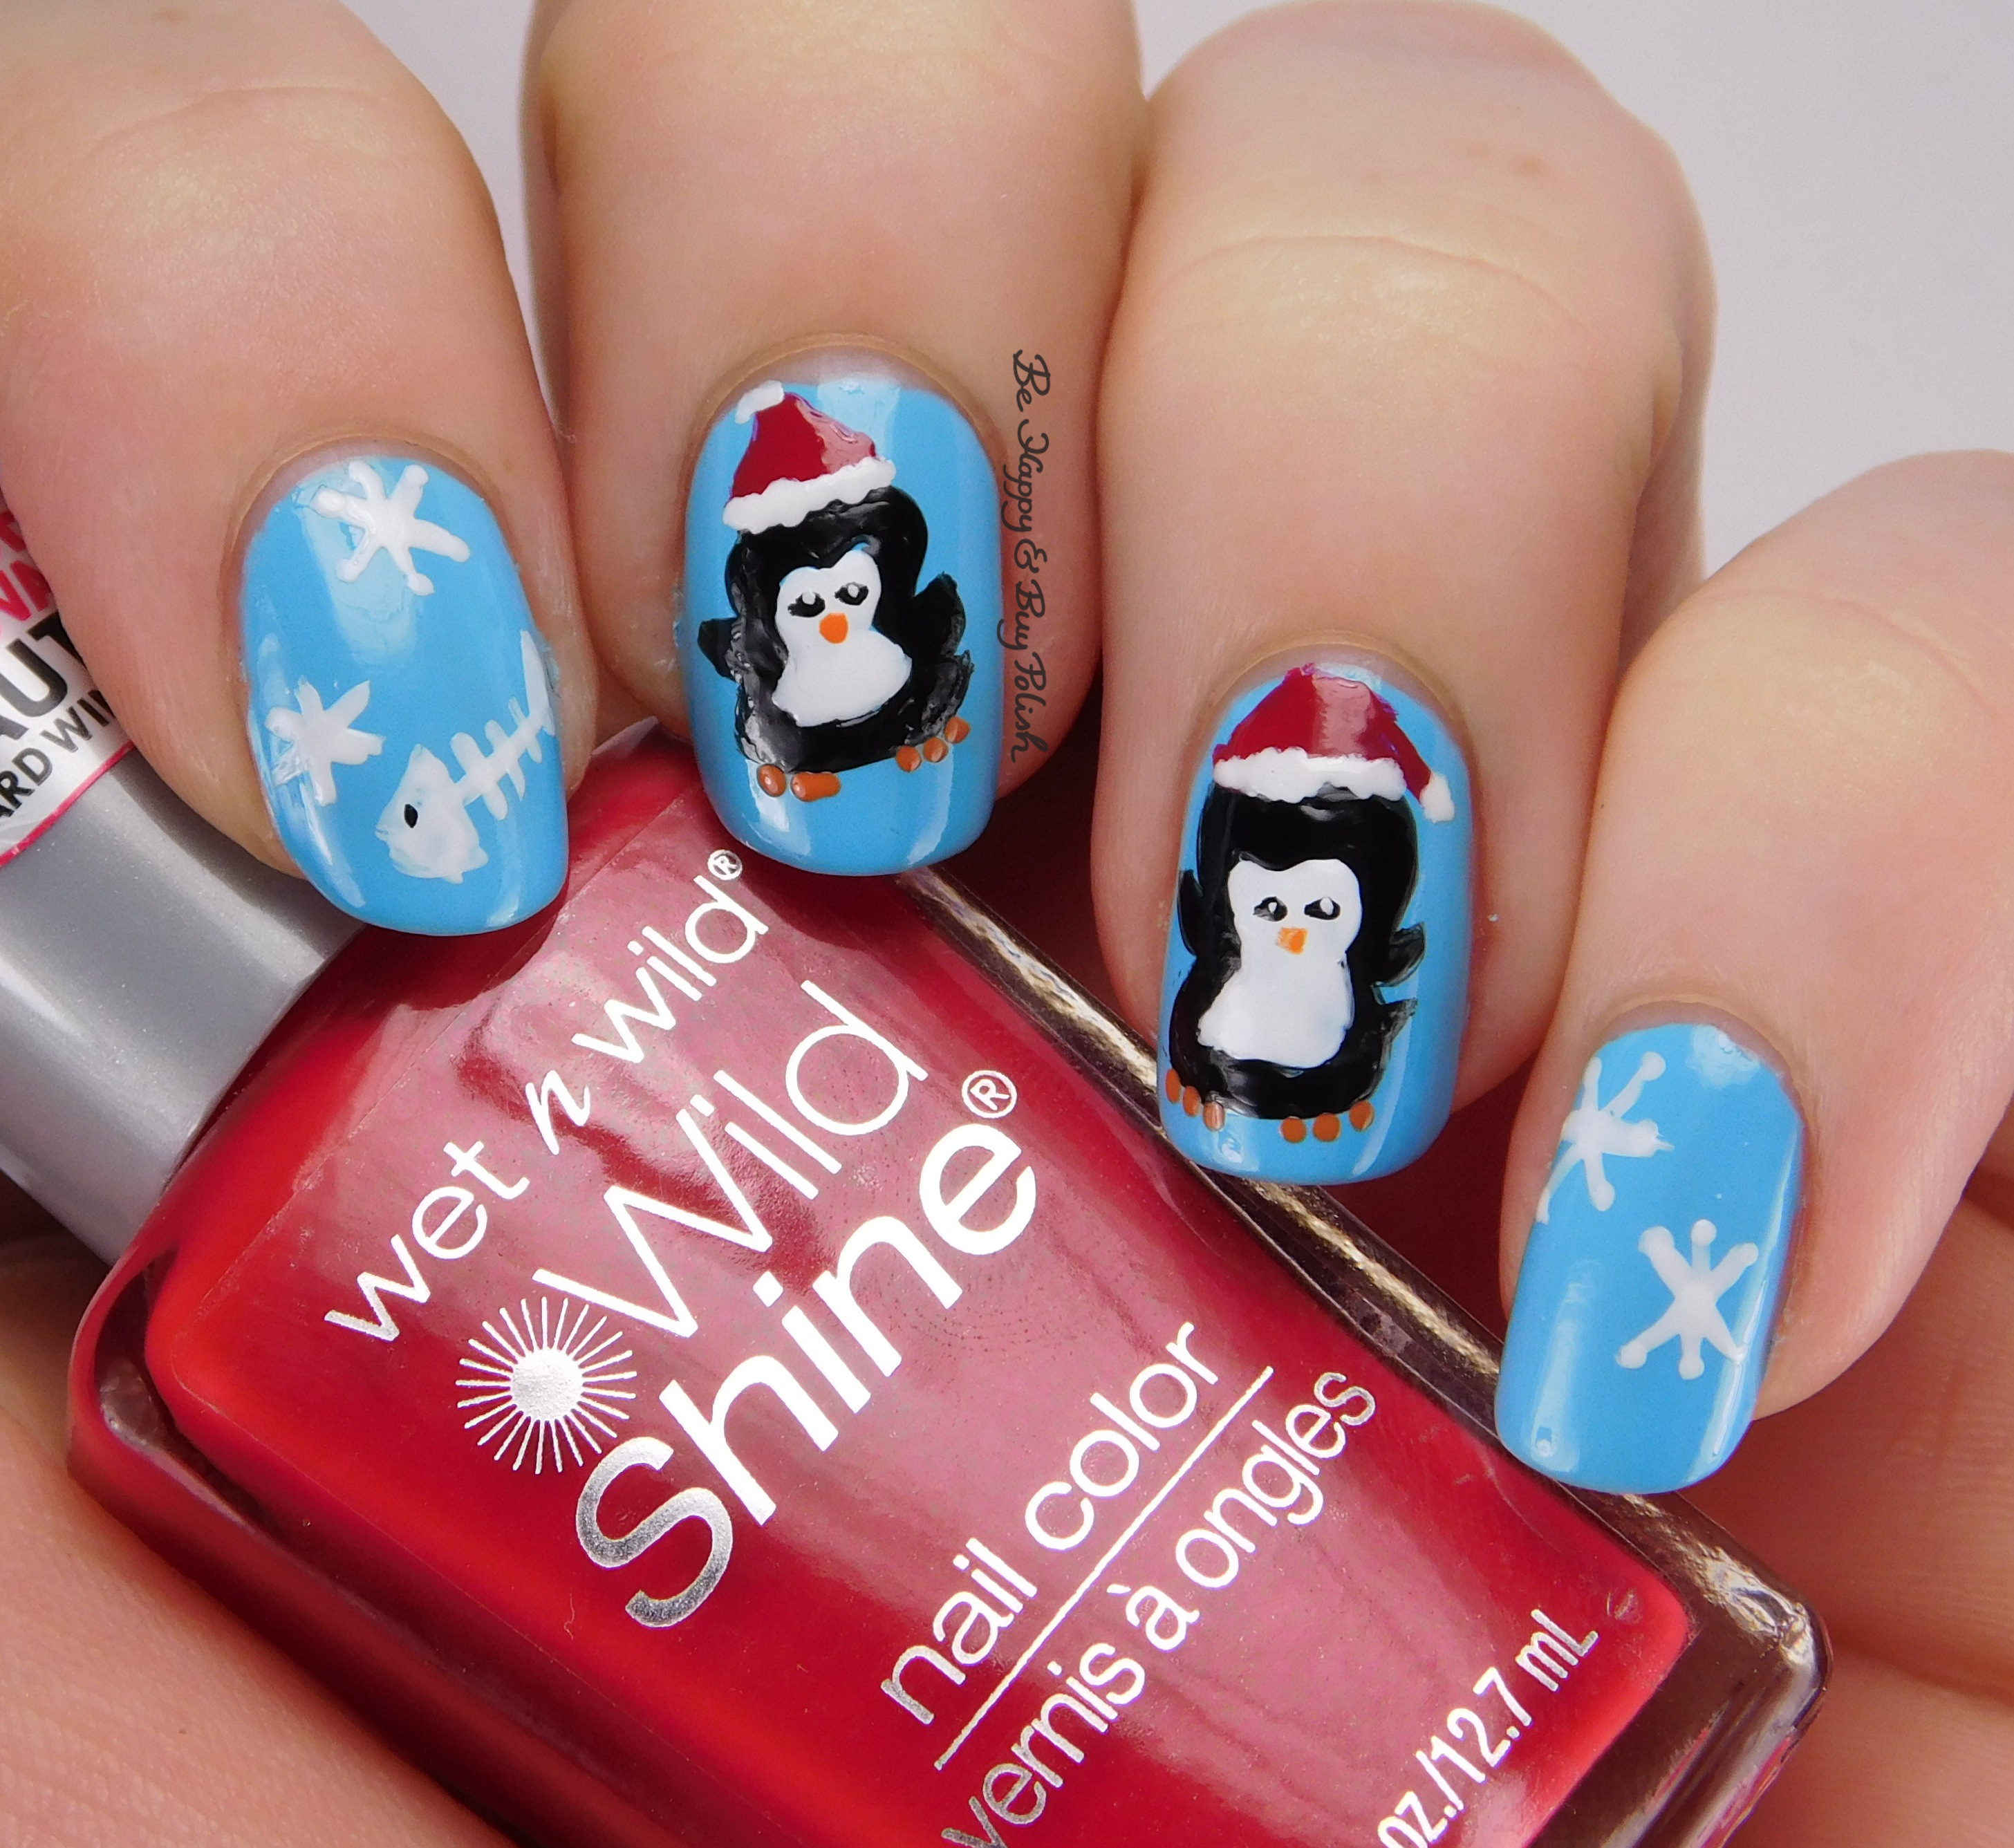 12 Days Of Christmas Nail Art Challenge Penguins Be Happy And Buy